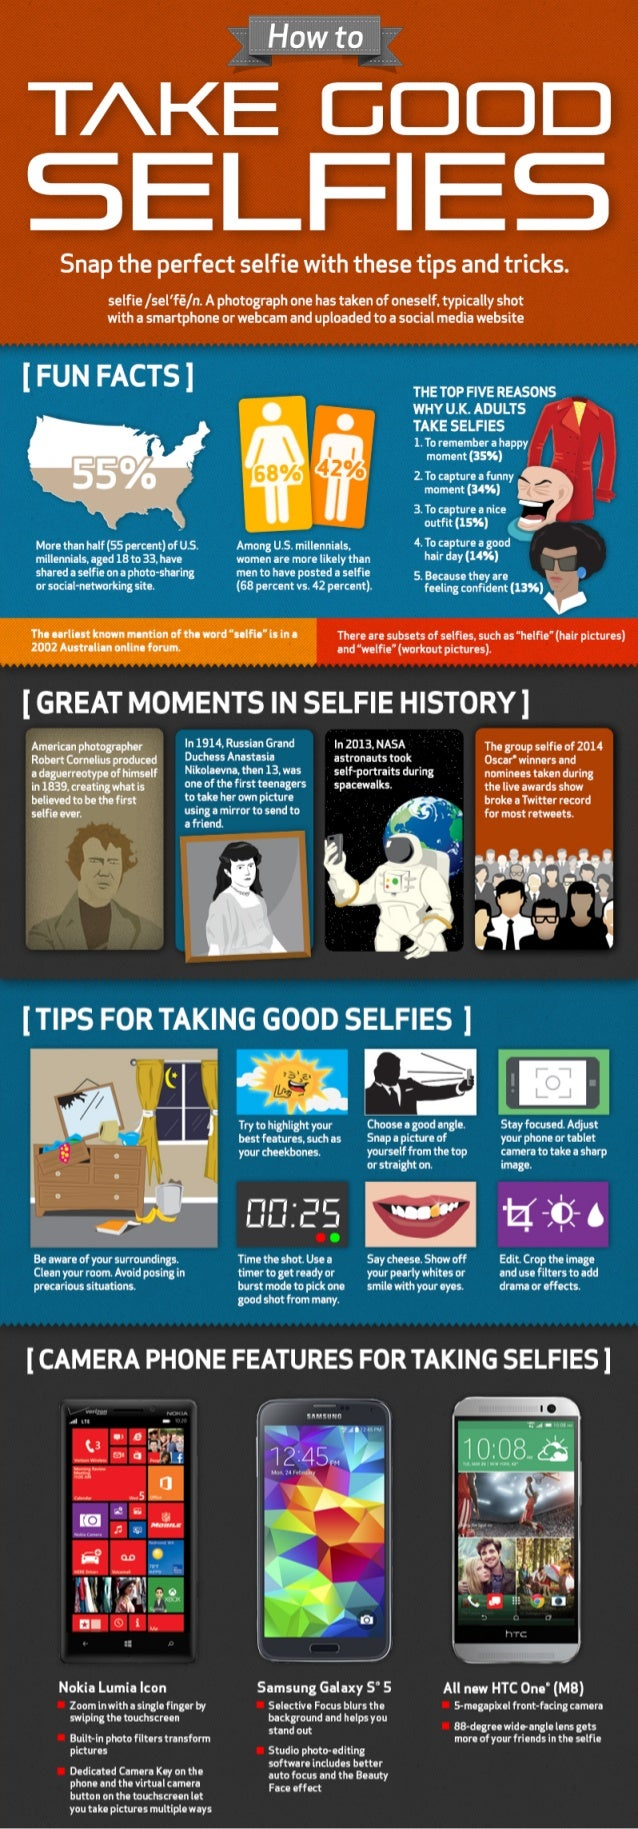 Snap the perfect selfie with these tips and tricks.   selfie / sel'fé/ n. A photograph one has taken of oneself.  typicall...